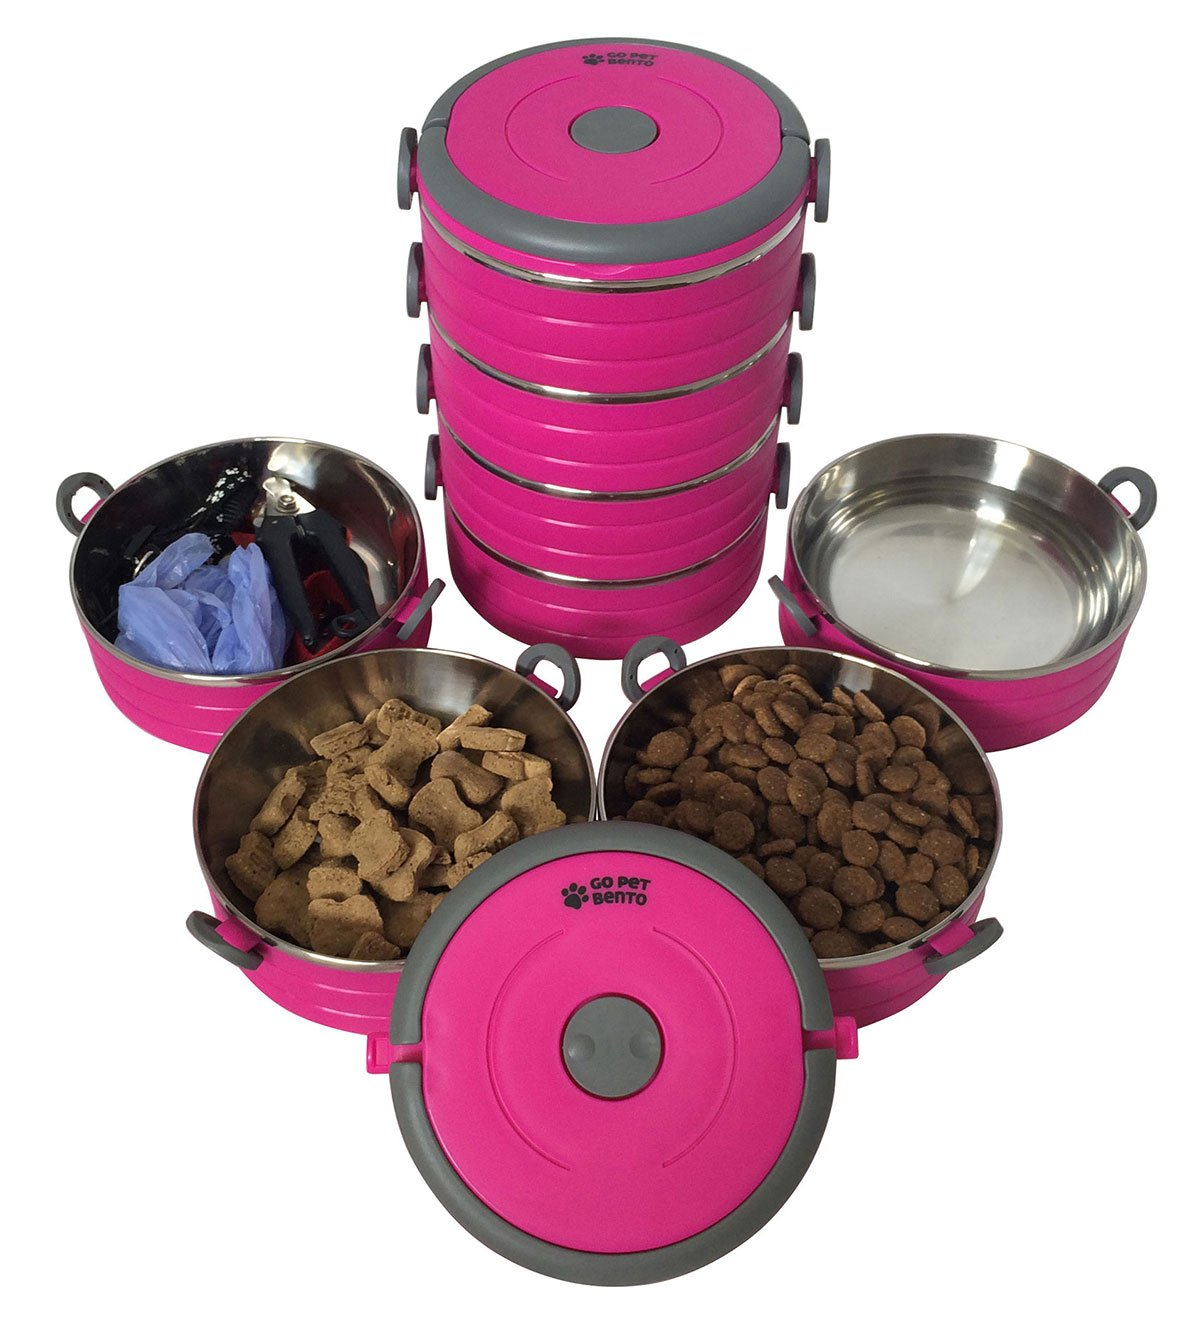 Water Rover Portable Pet Bowl: Stainless Steel Travel Dog Pet Bowl